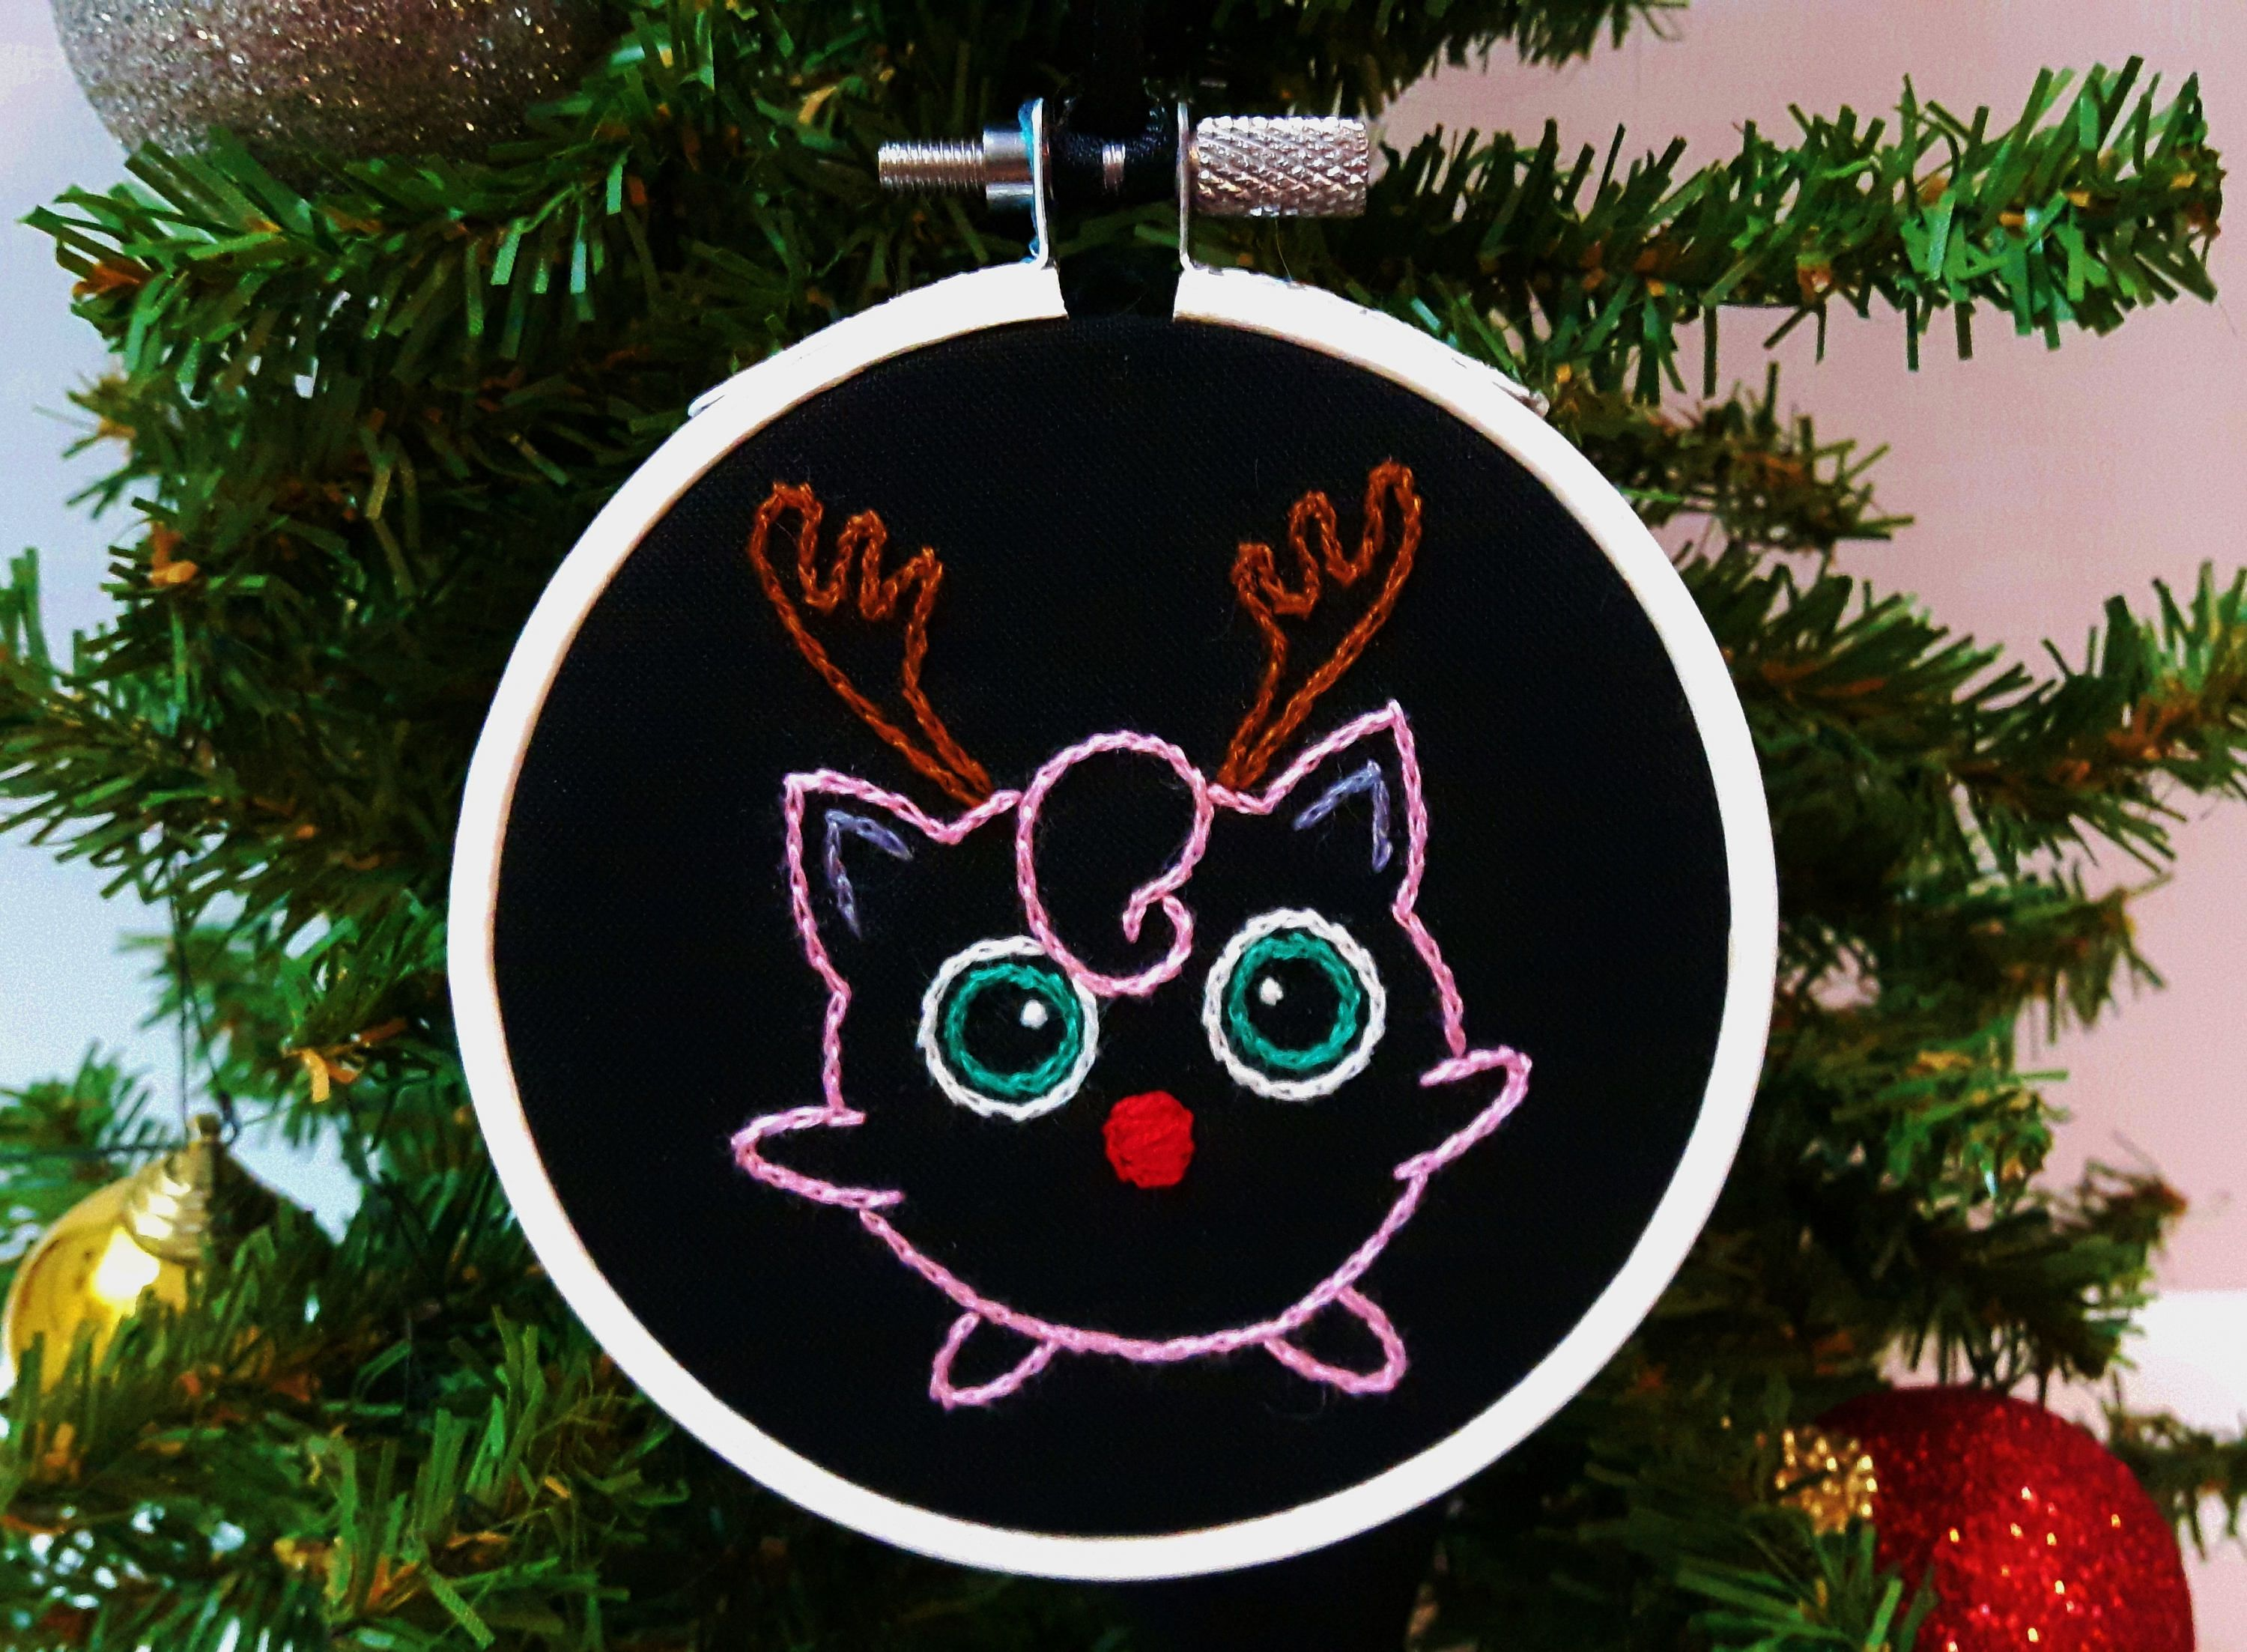 Hand Embroidered Christmas Ornament Jigglypuff With Reindeer Antlers Pokemon Gifts